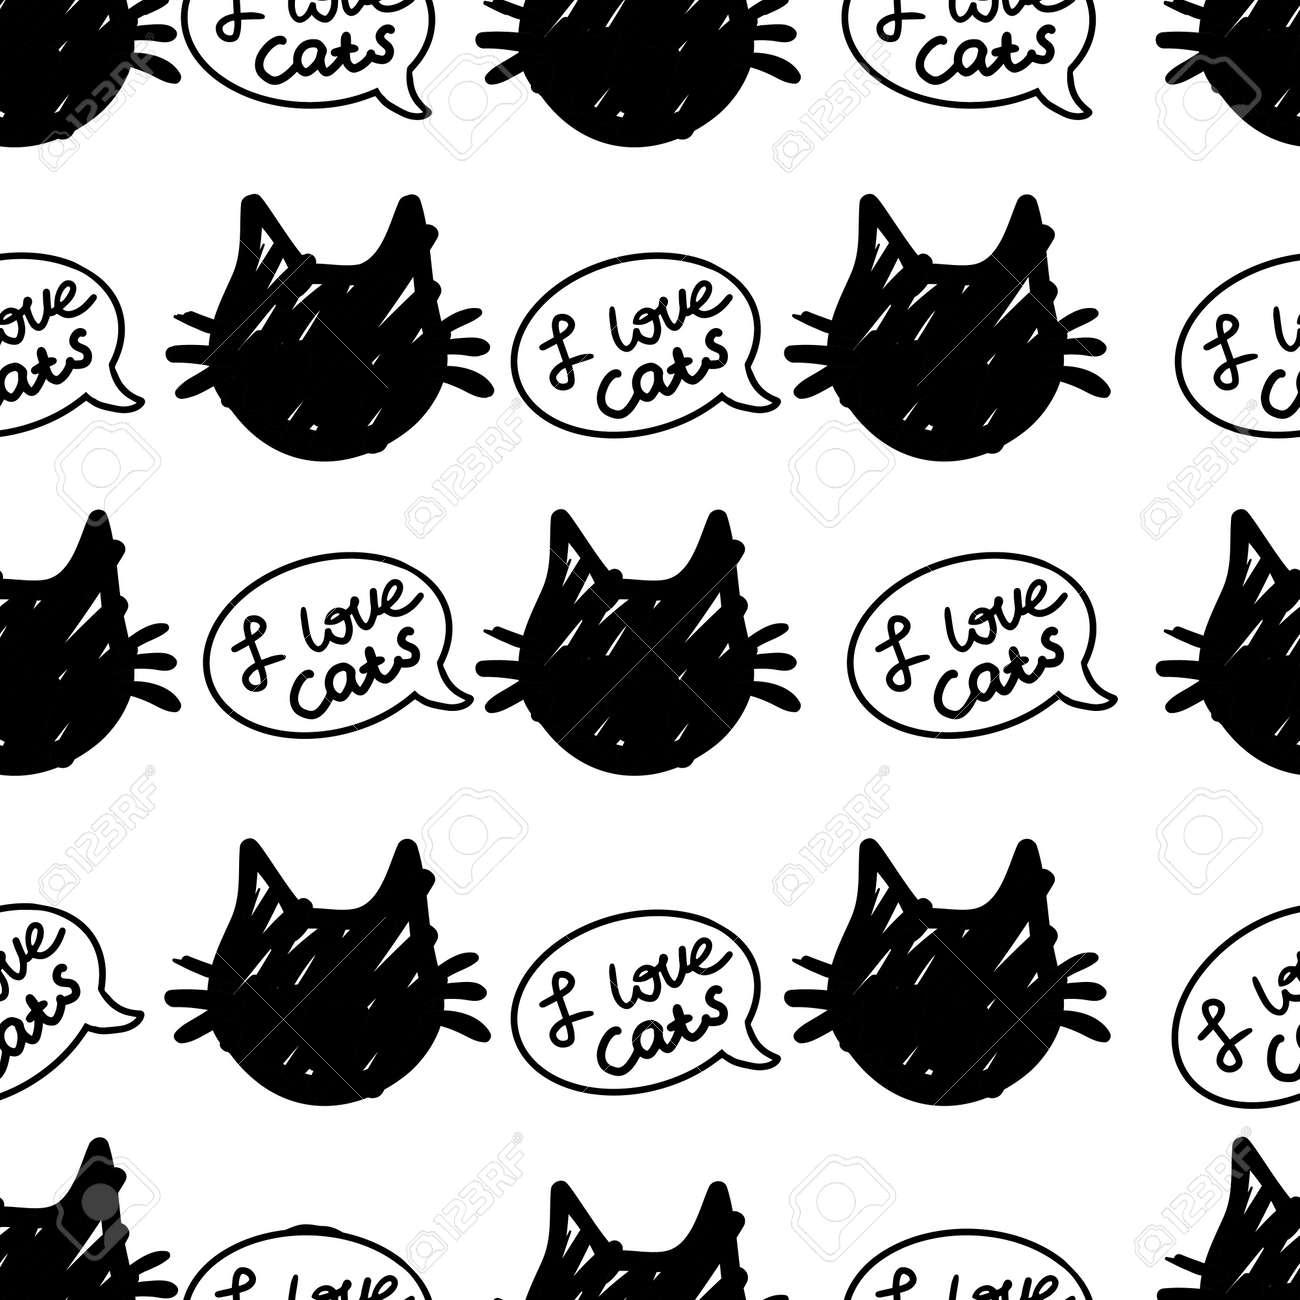 cat vector seamless in black and white colors.Wallpaper background with cartoon kitty muzzles. Pattern for textile, wrapping and etc. - 154728215